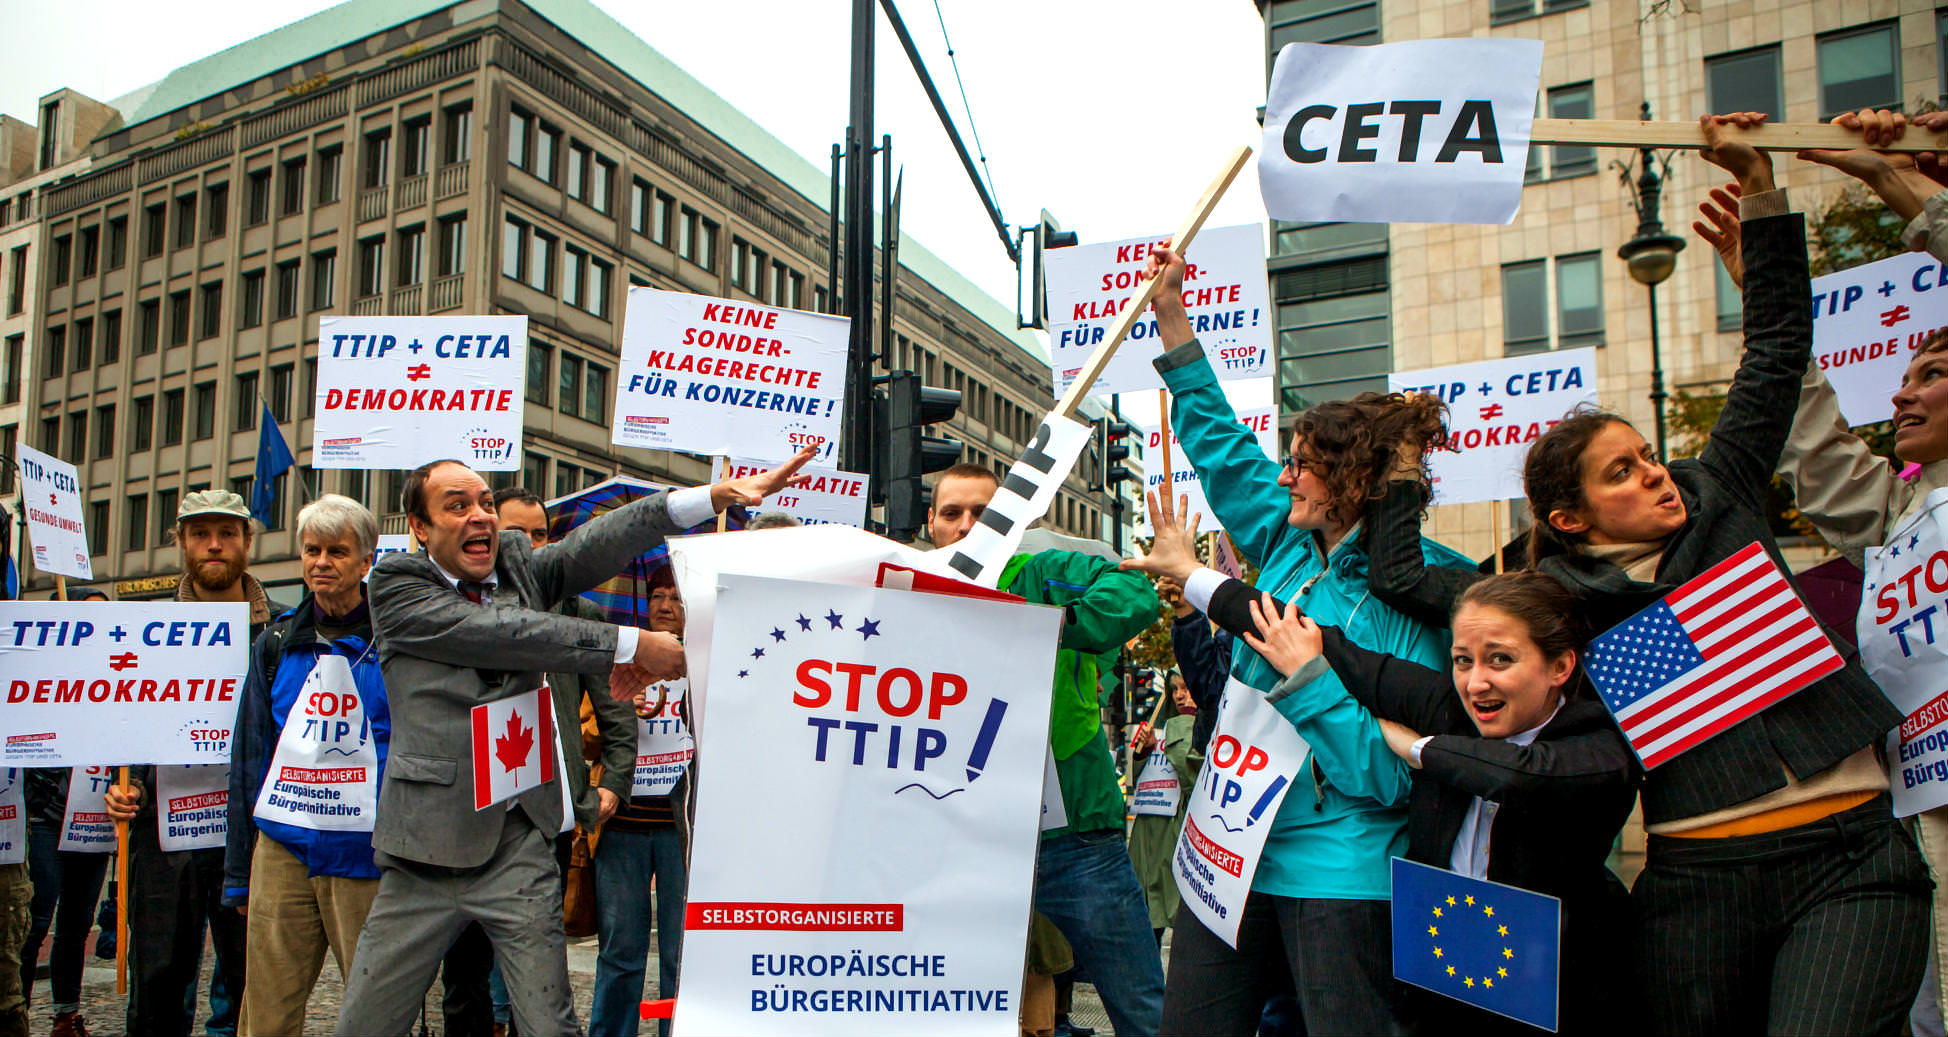 Progressive voters favour independent assessment of Harper's CETA trade deal: Poll